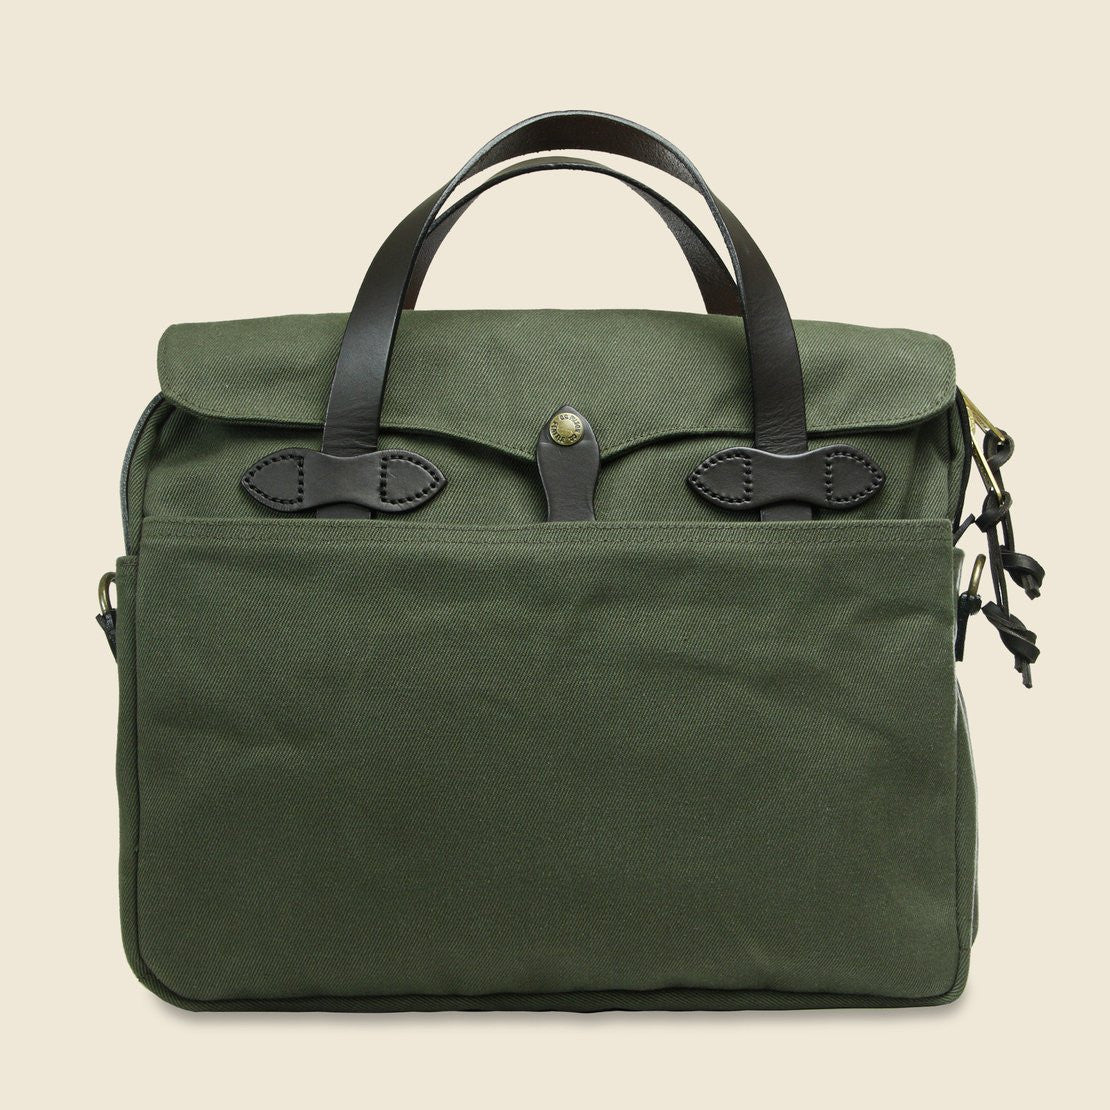 Filson Original Briefcase - Otter Green